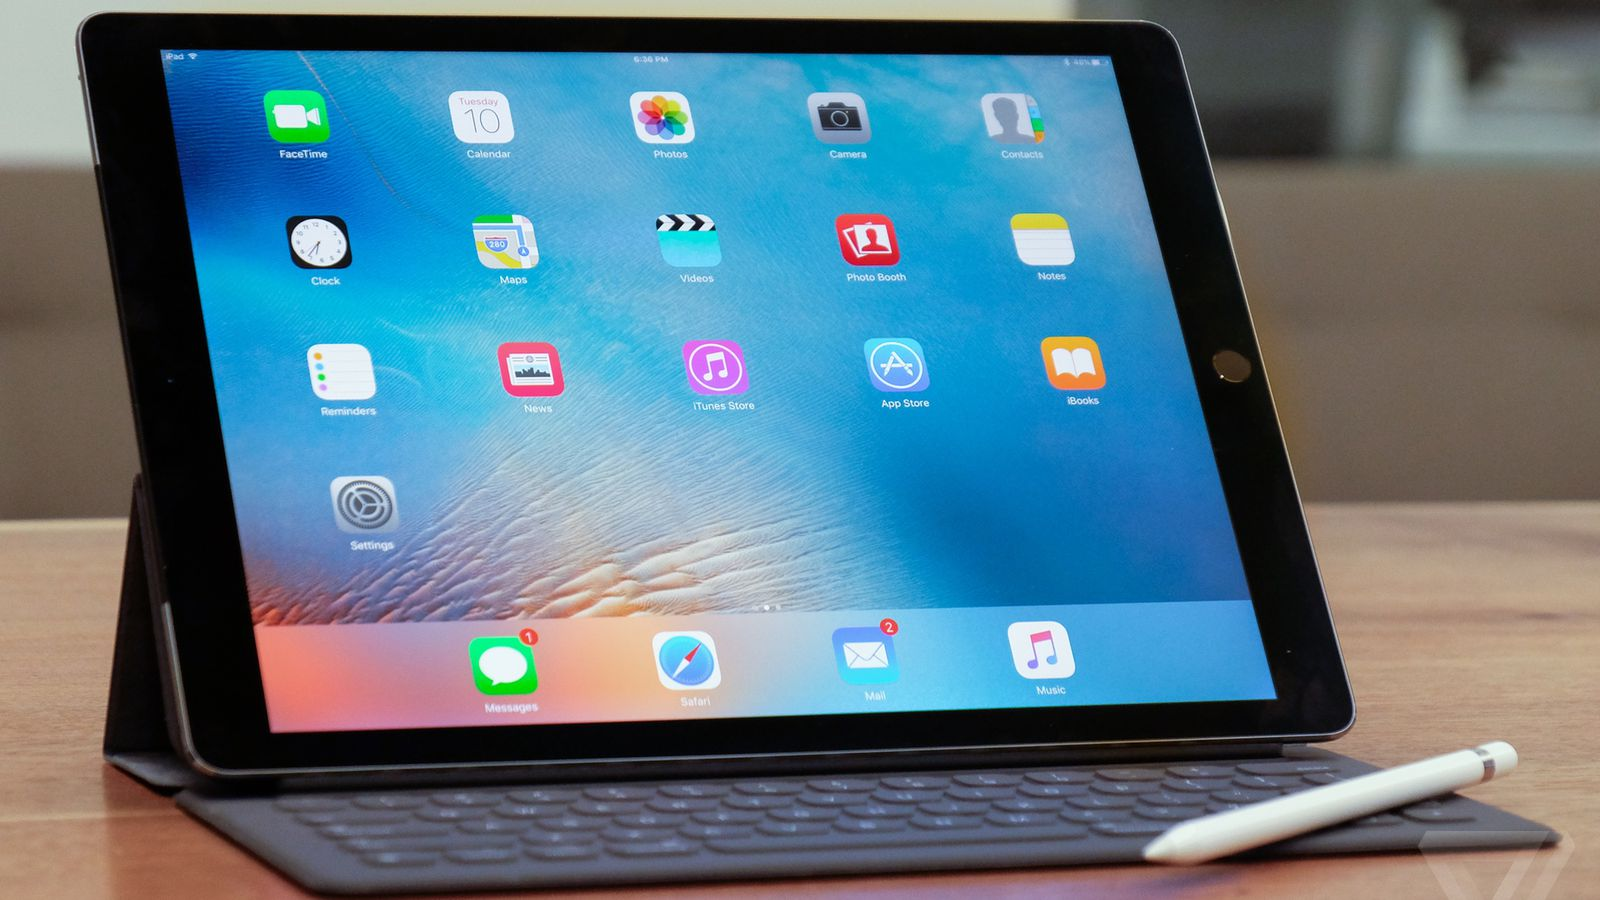 Apple U0026 39 S Ipad Is More Popular With Businesses Than Consumers